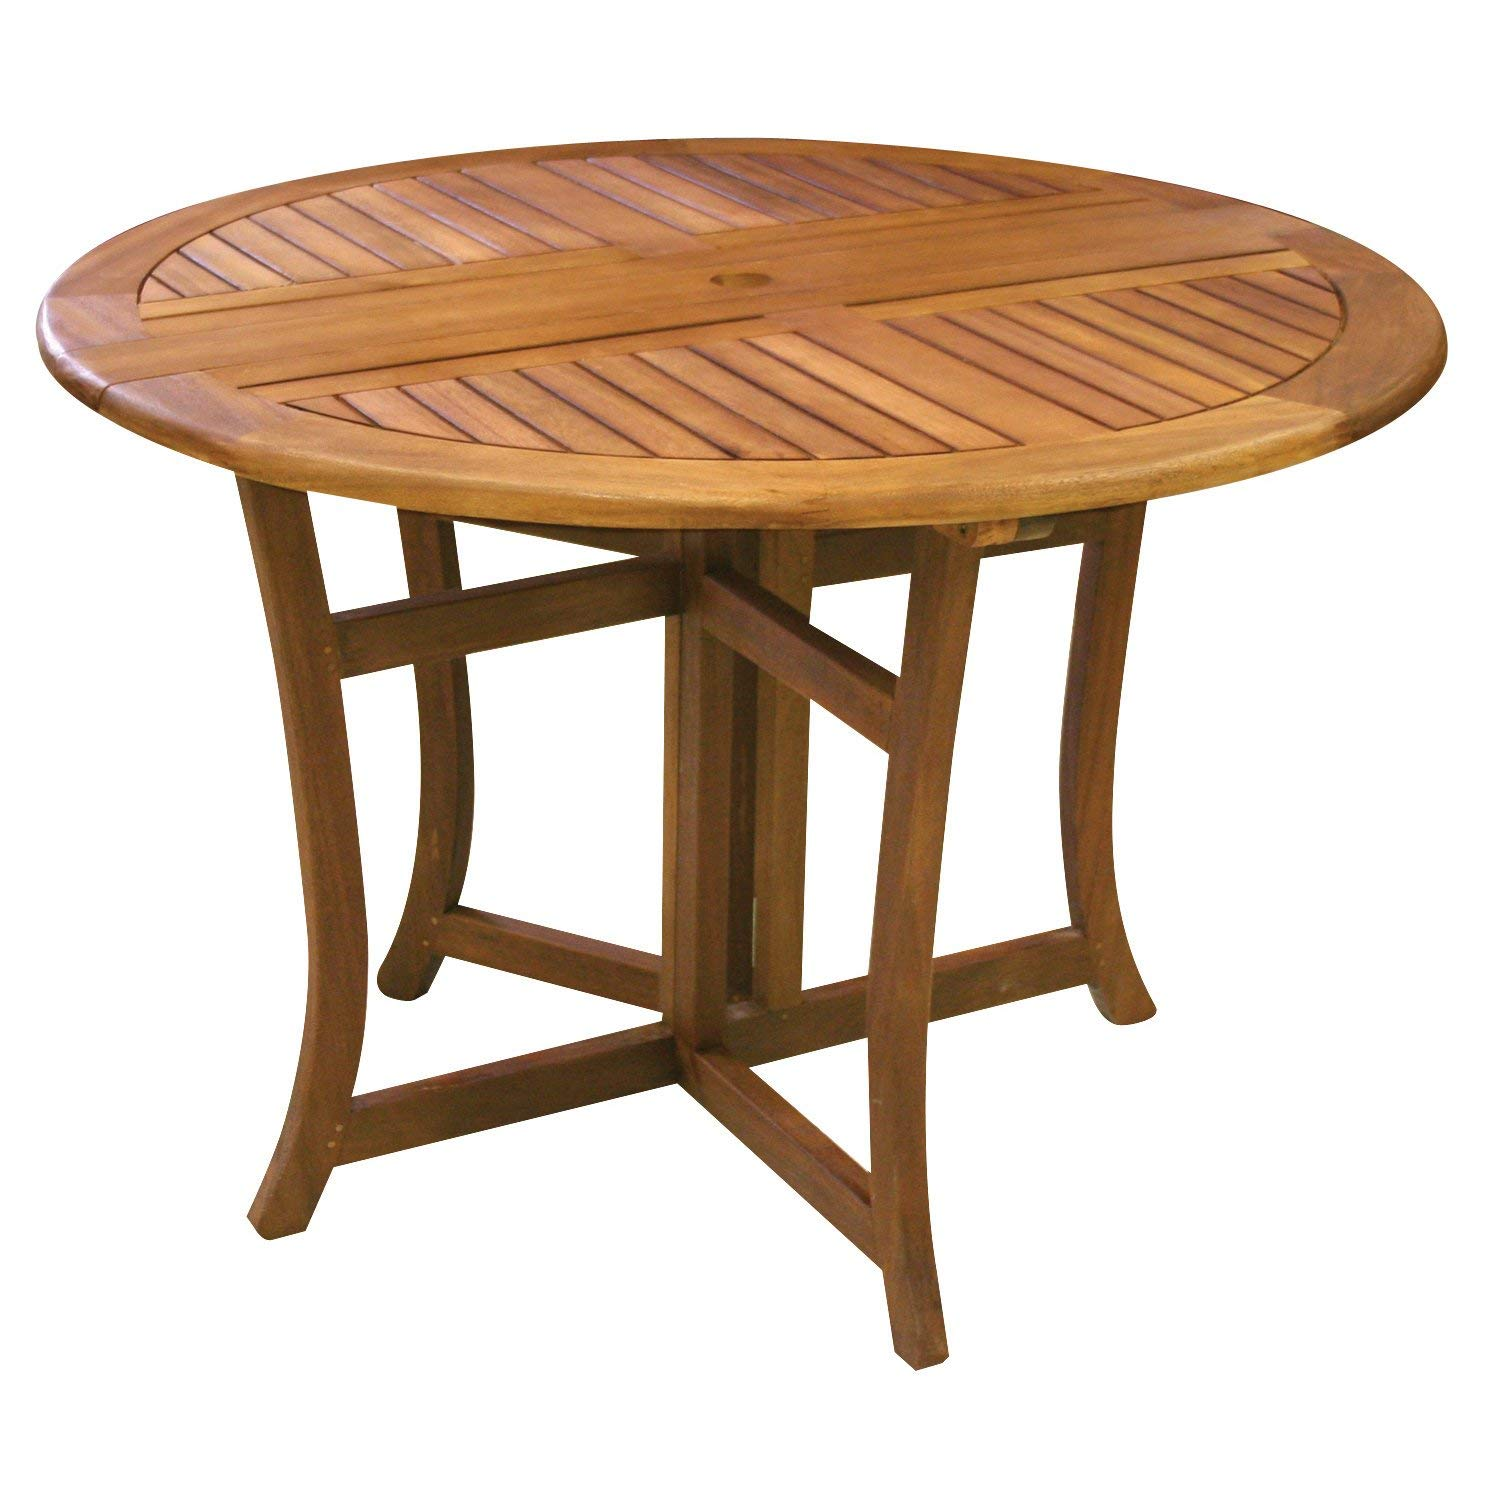 folding patio table amazon.com : eucalyptus 43 inch round folding deck table : patio dining UDOVNQK